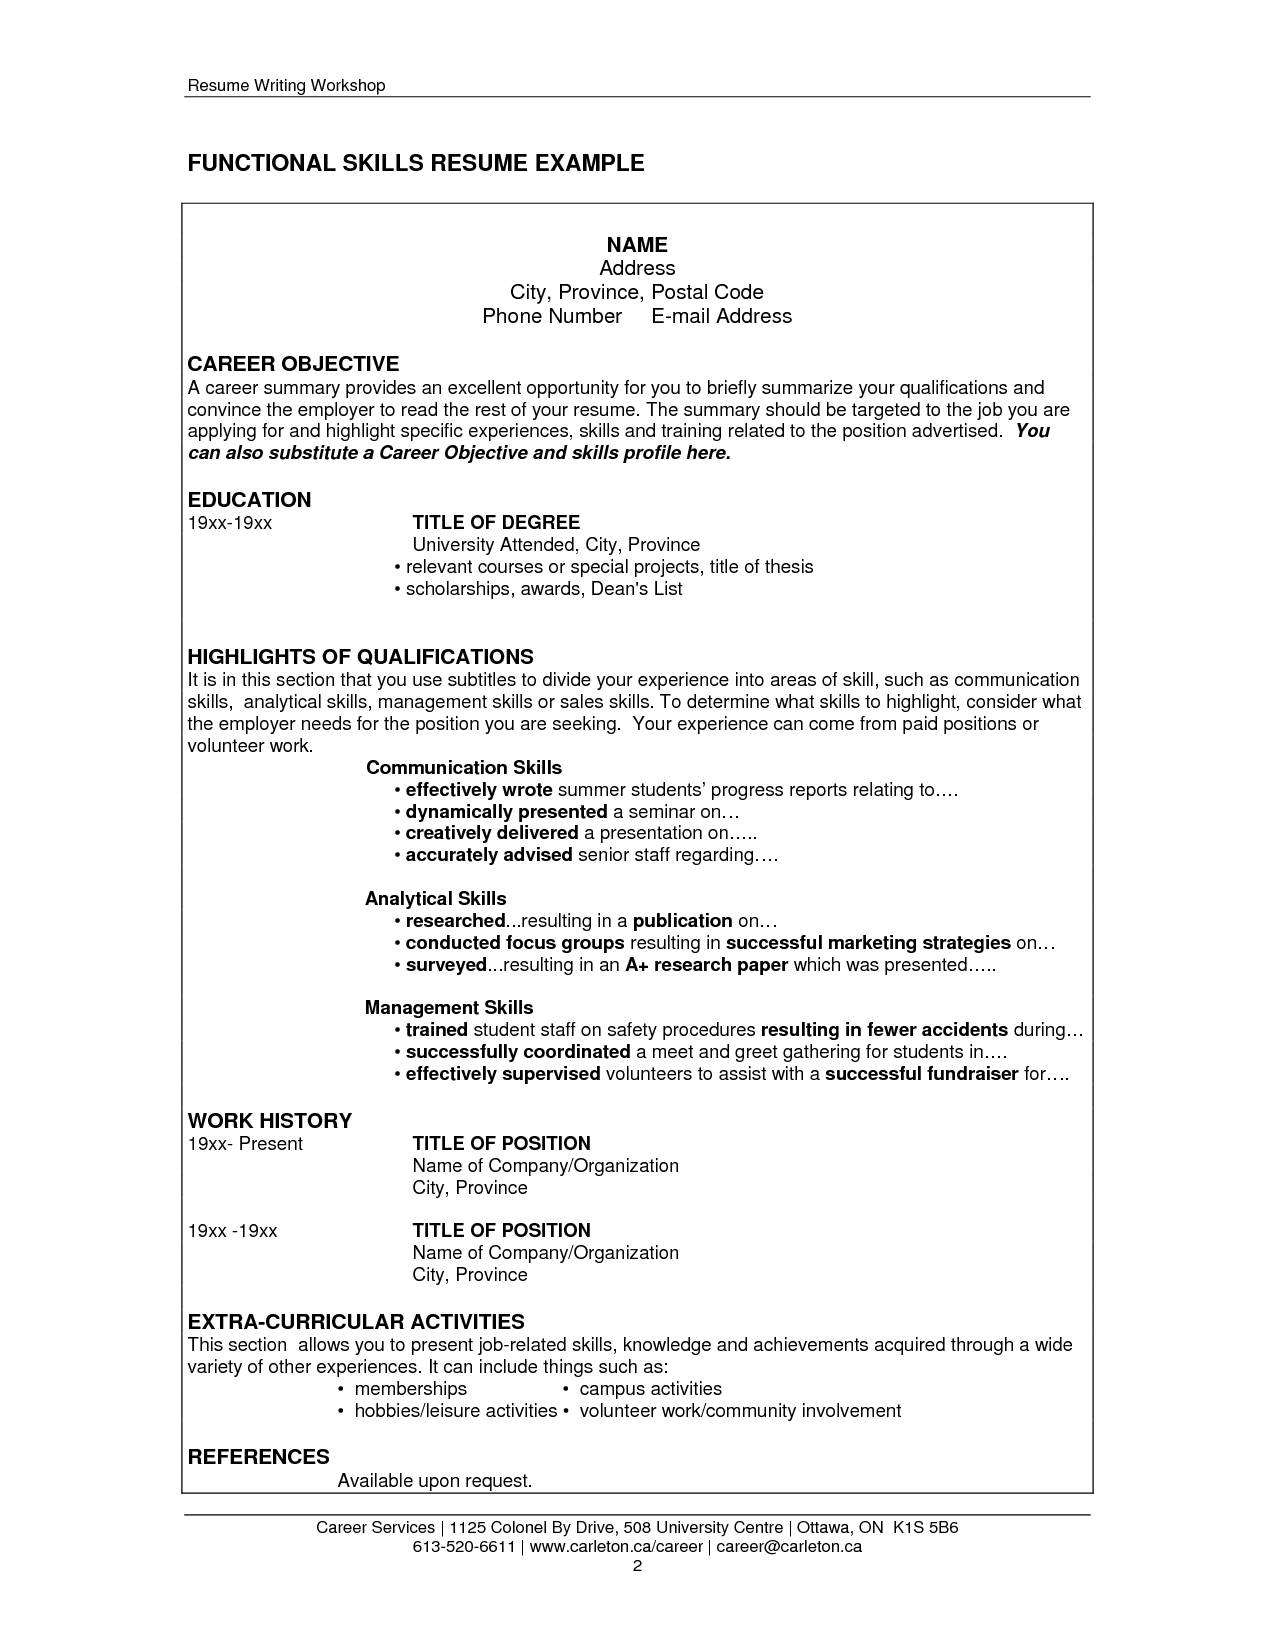 Attractive Resume Sample Of Skills And Abilities Resume Sample Of Skills And Abilities,  List Of Skills To Put On Resumes, Example Of Key Skills In Resume, ...